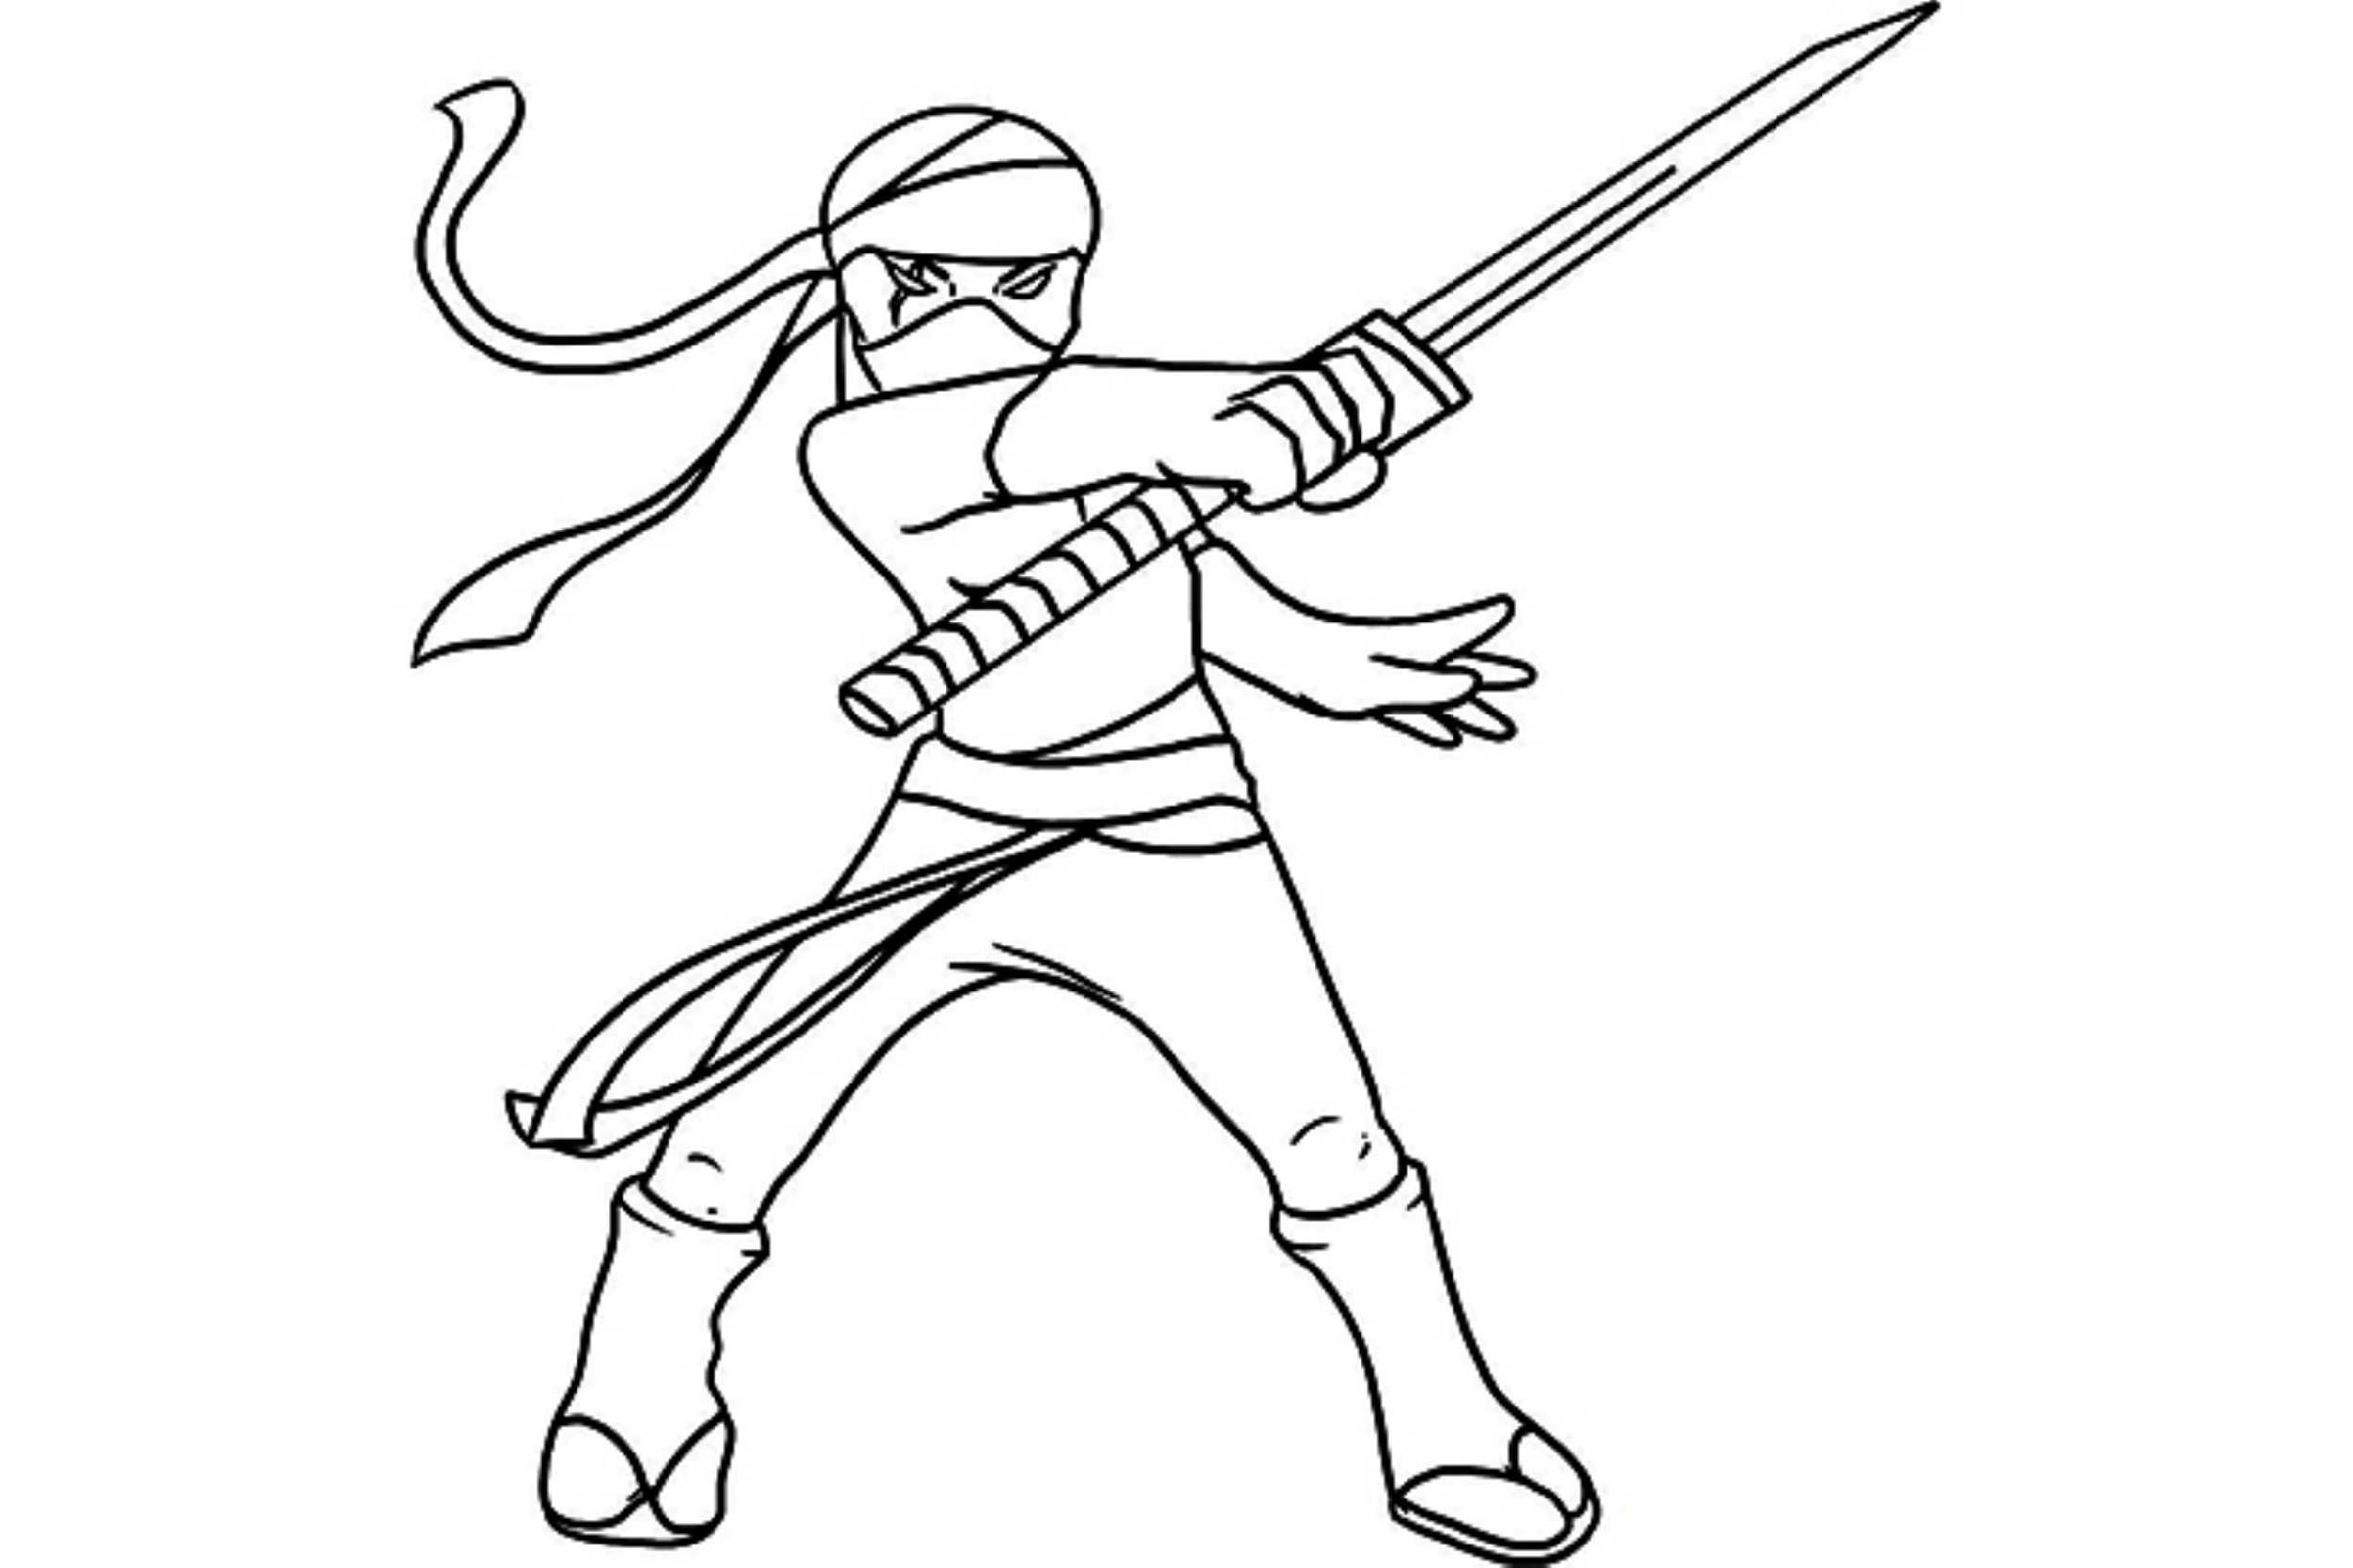 coloring pages of ninjas ninja coloring pages for kids downloadable k5 worksheets pages coloring of ninjas